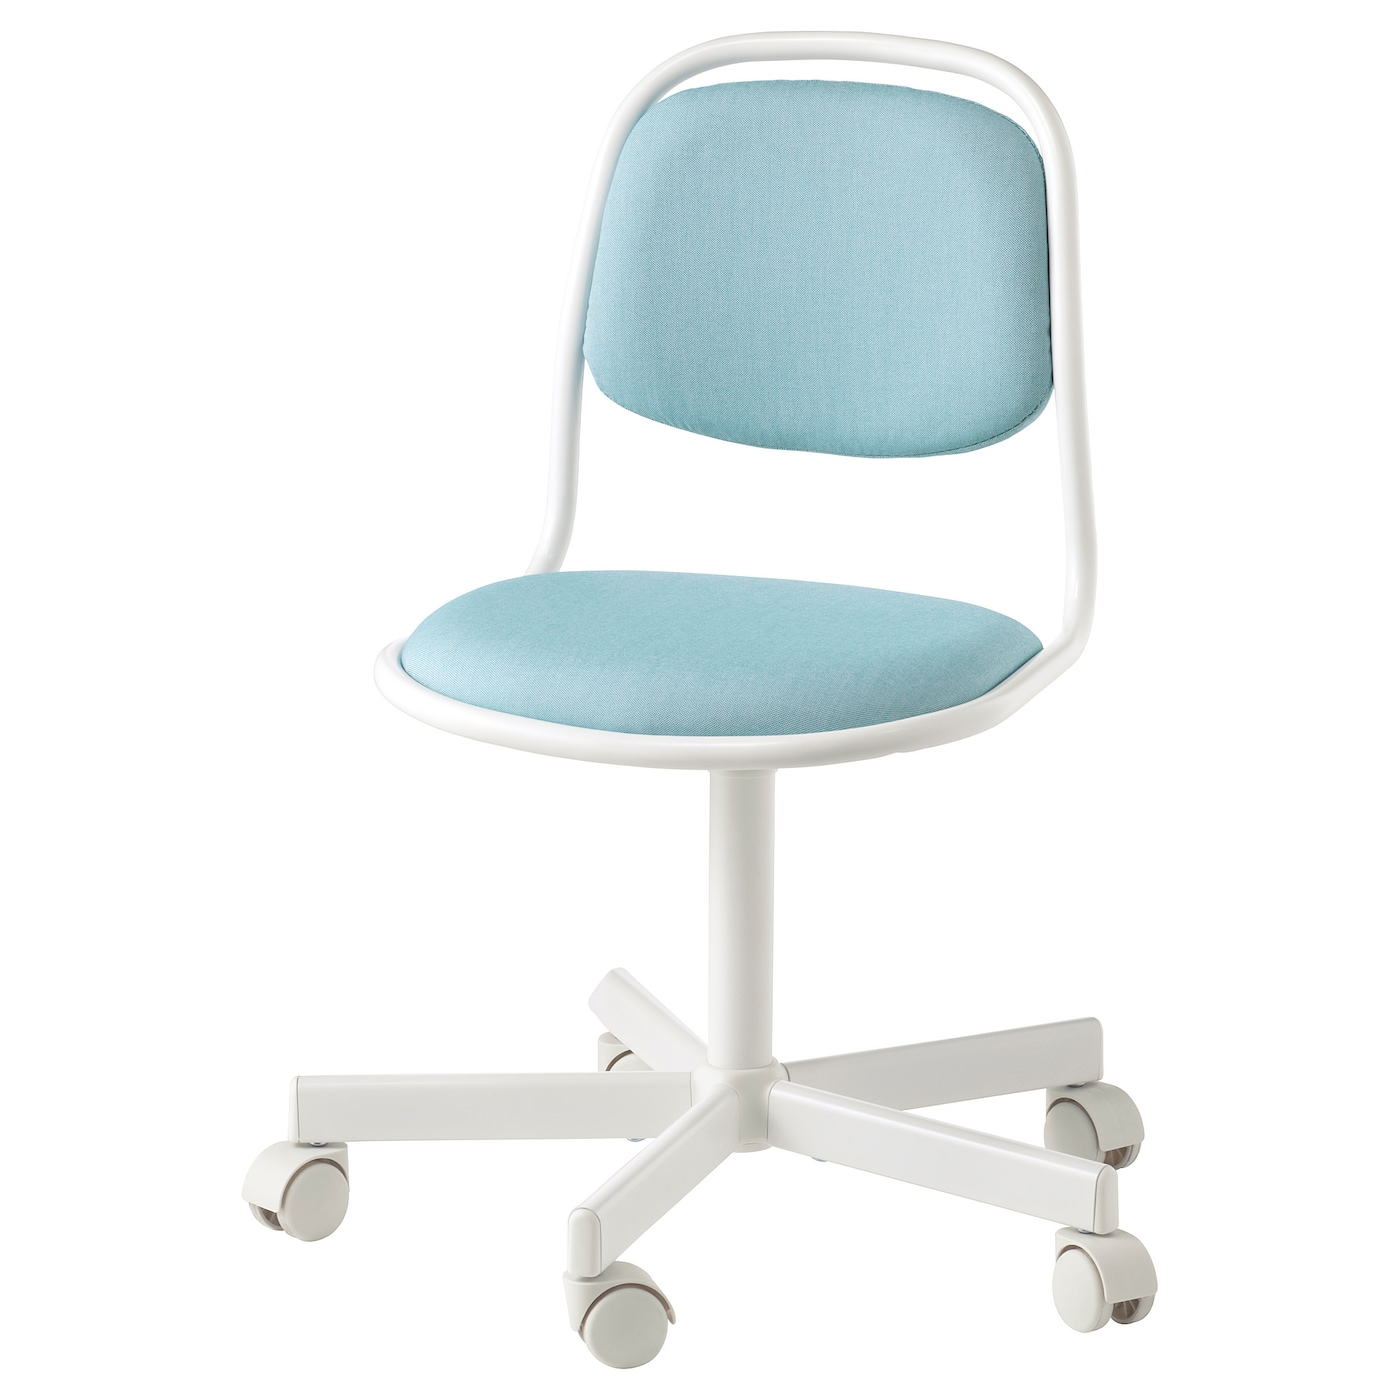 Orfjall Child S Desk Chair White Vissle Blue Green Ikea